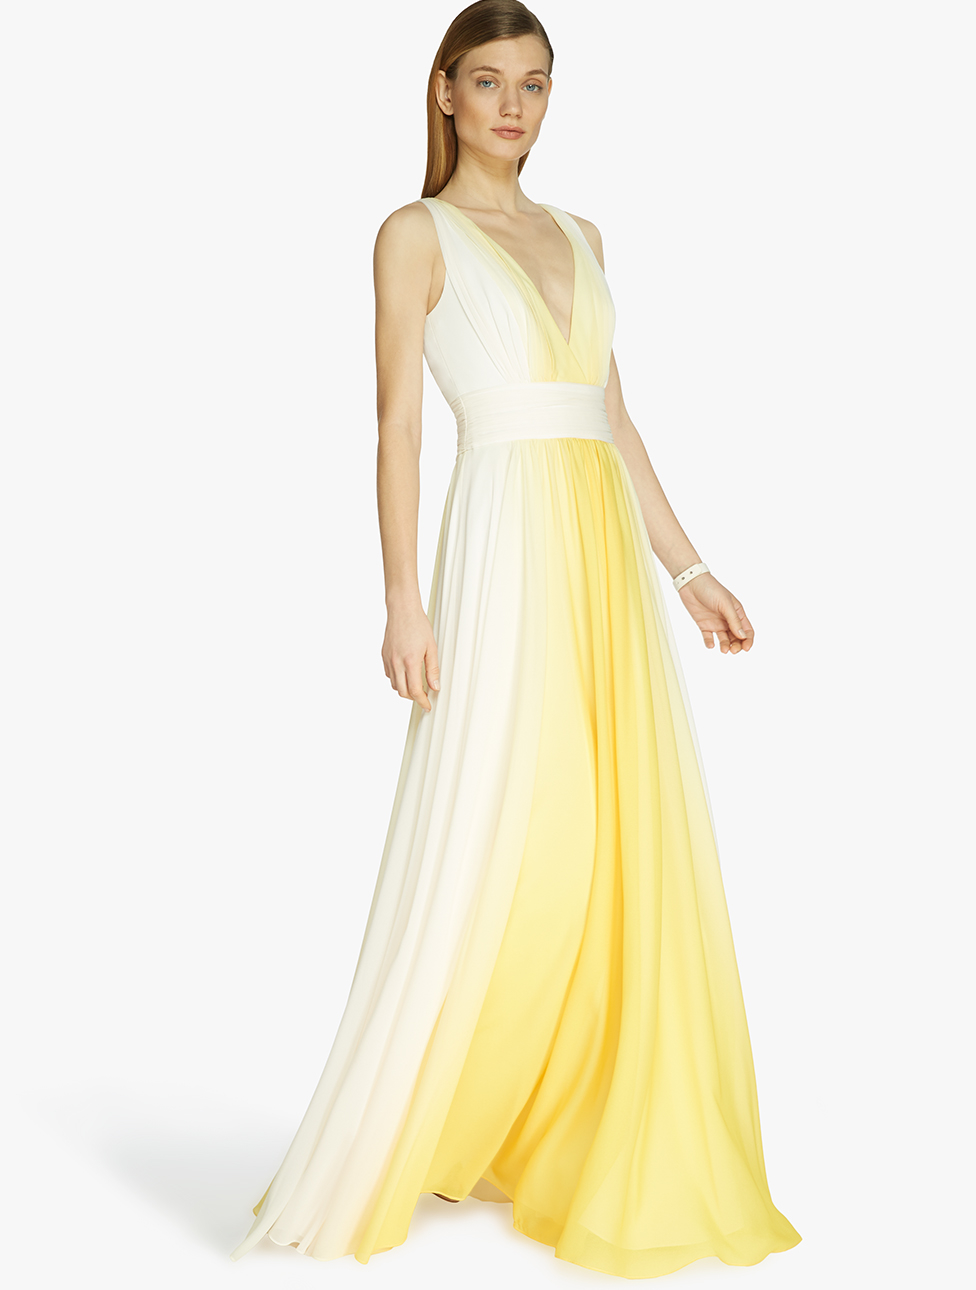 Lyst - Halston Ombre Printed Gown in Yellow